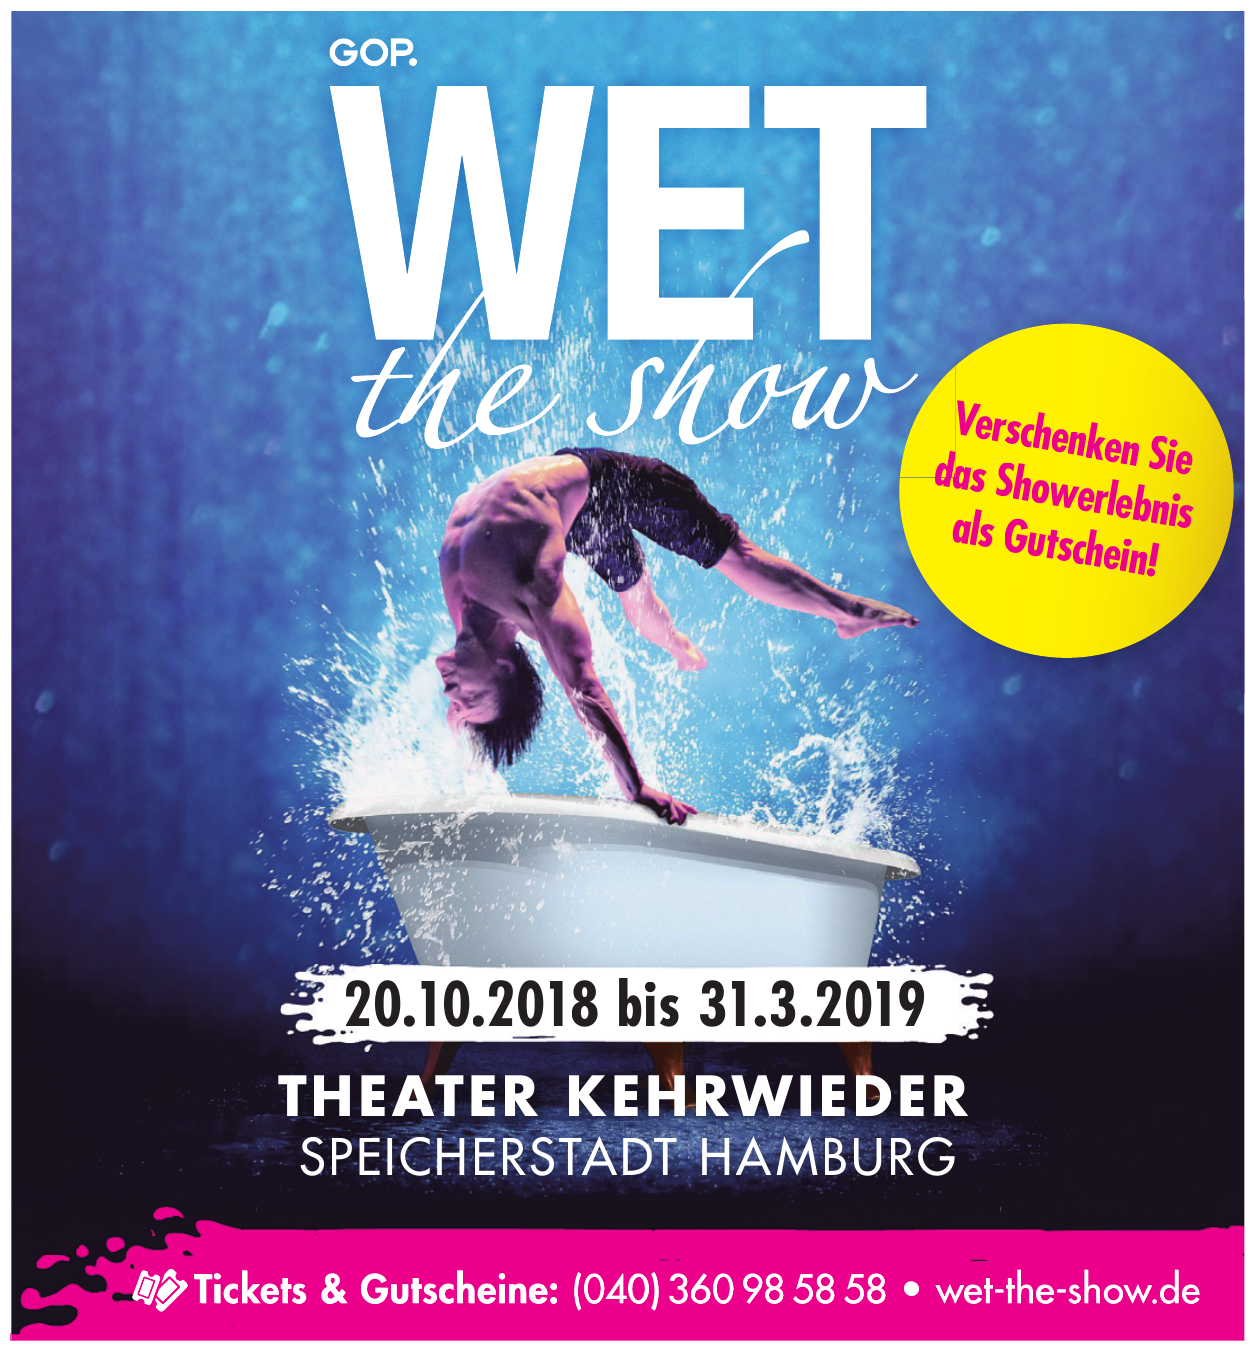 Wet The show